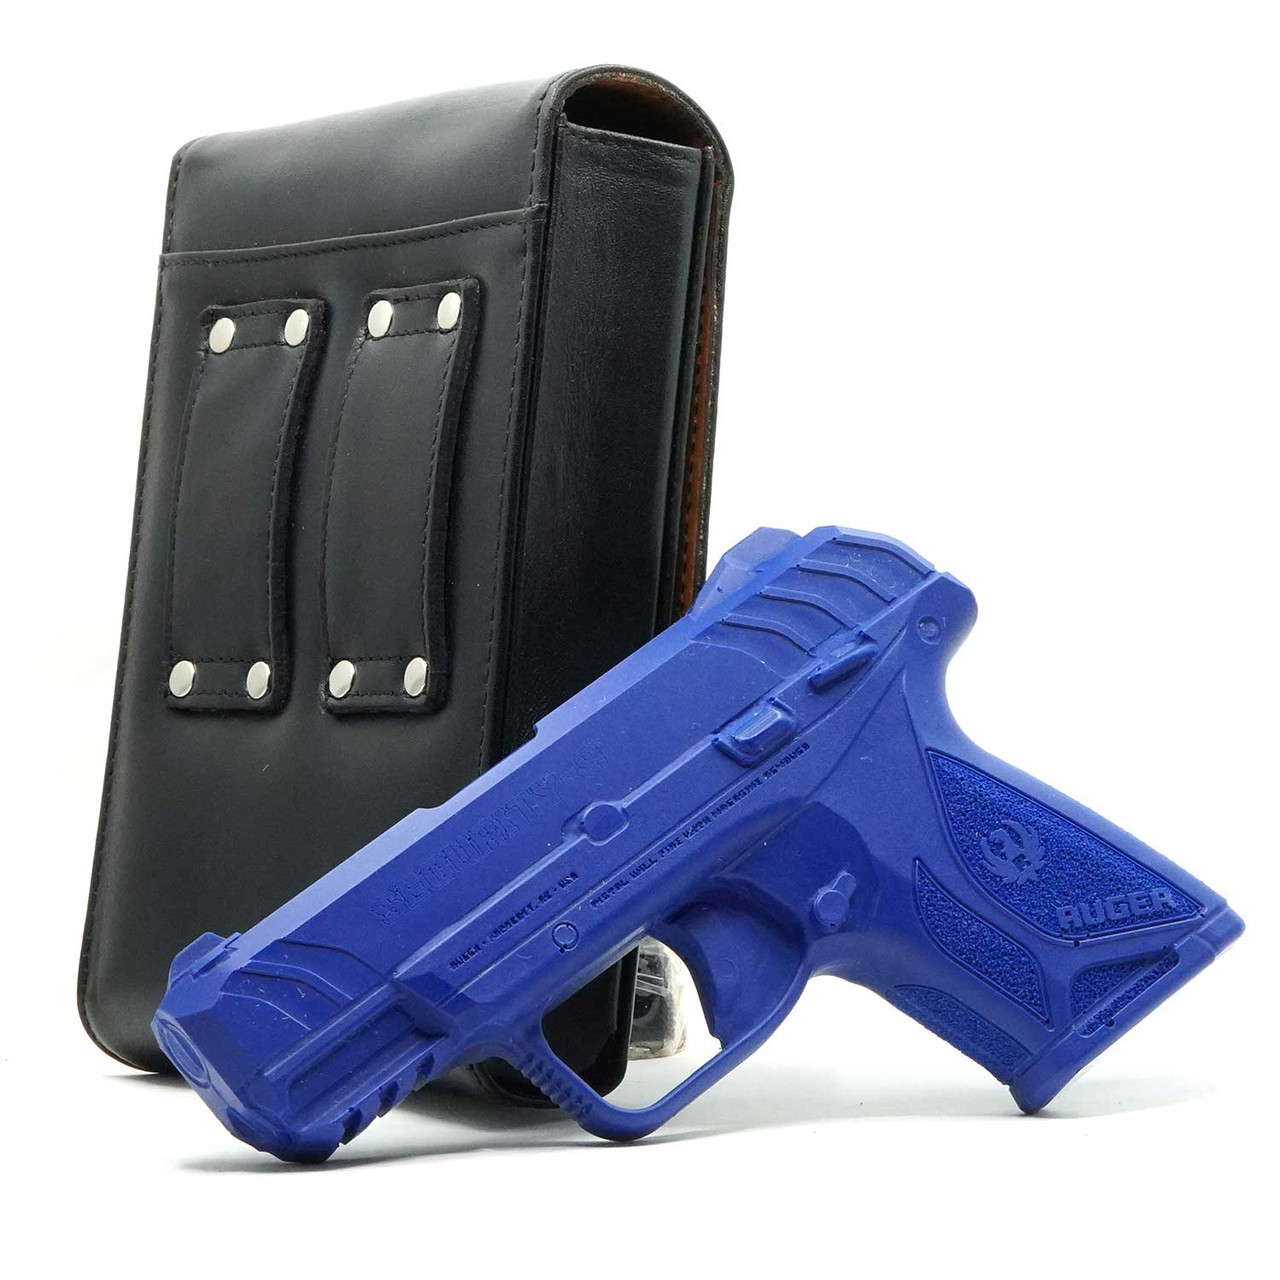 Ruger Security 9 Compact Holster